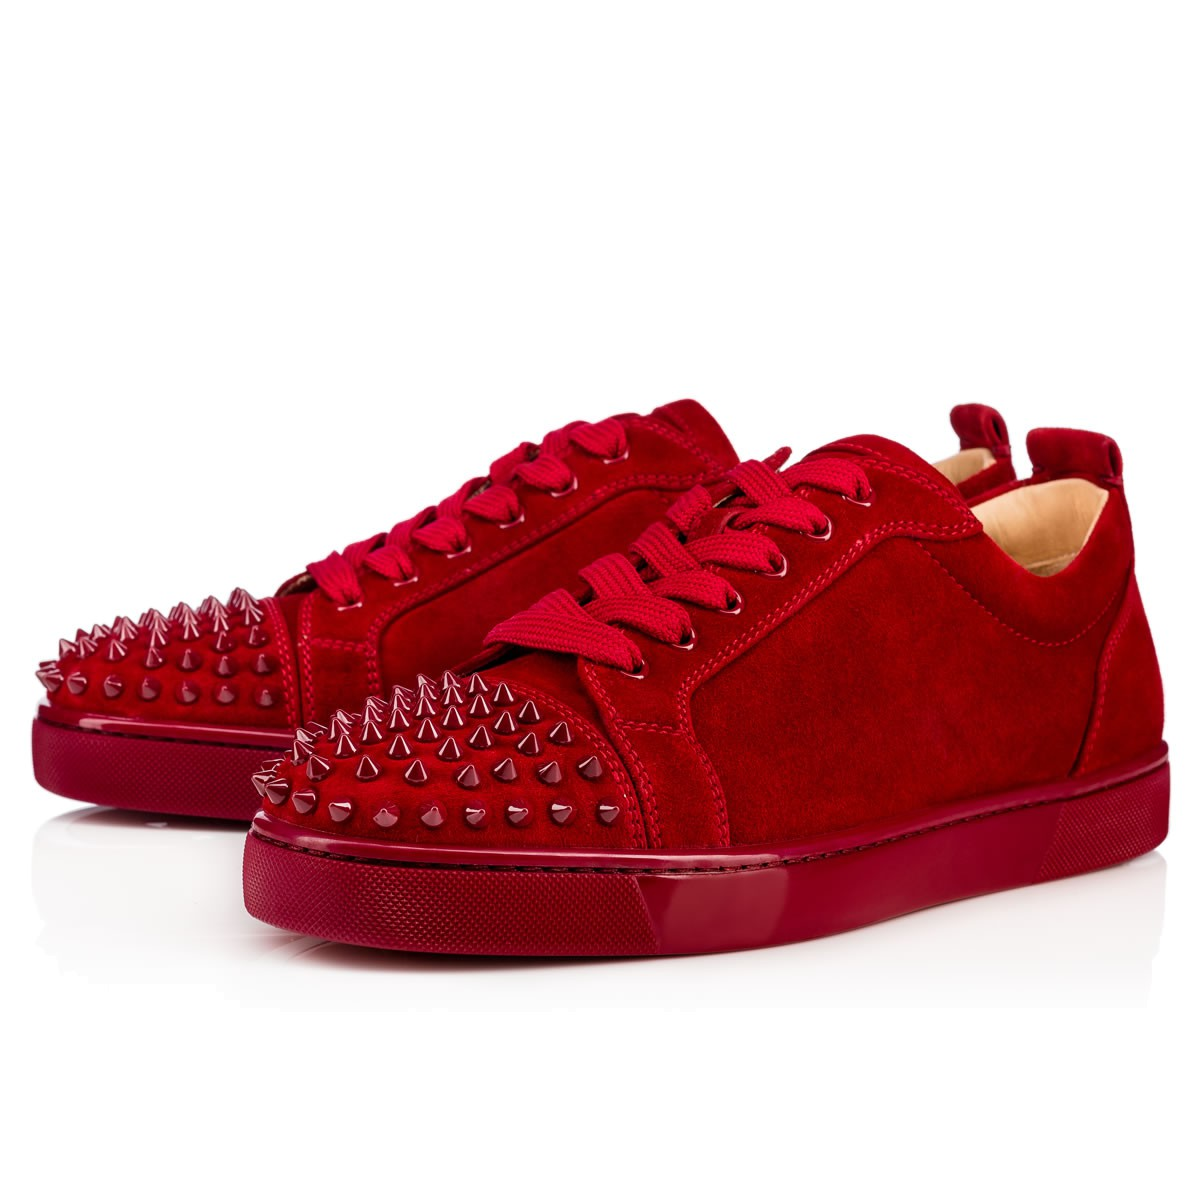 d80fef62568f Christian Louboutin Louis Junior Spikes Flat Suede Sneakers In Red ...